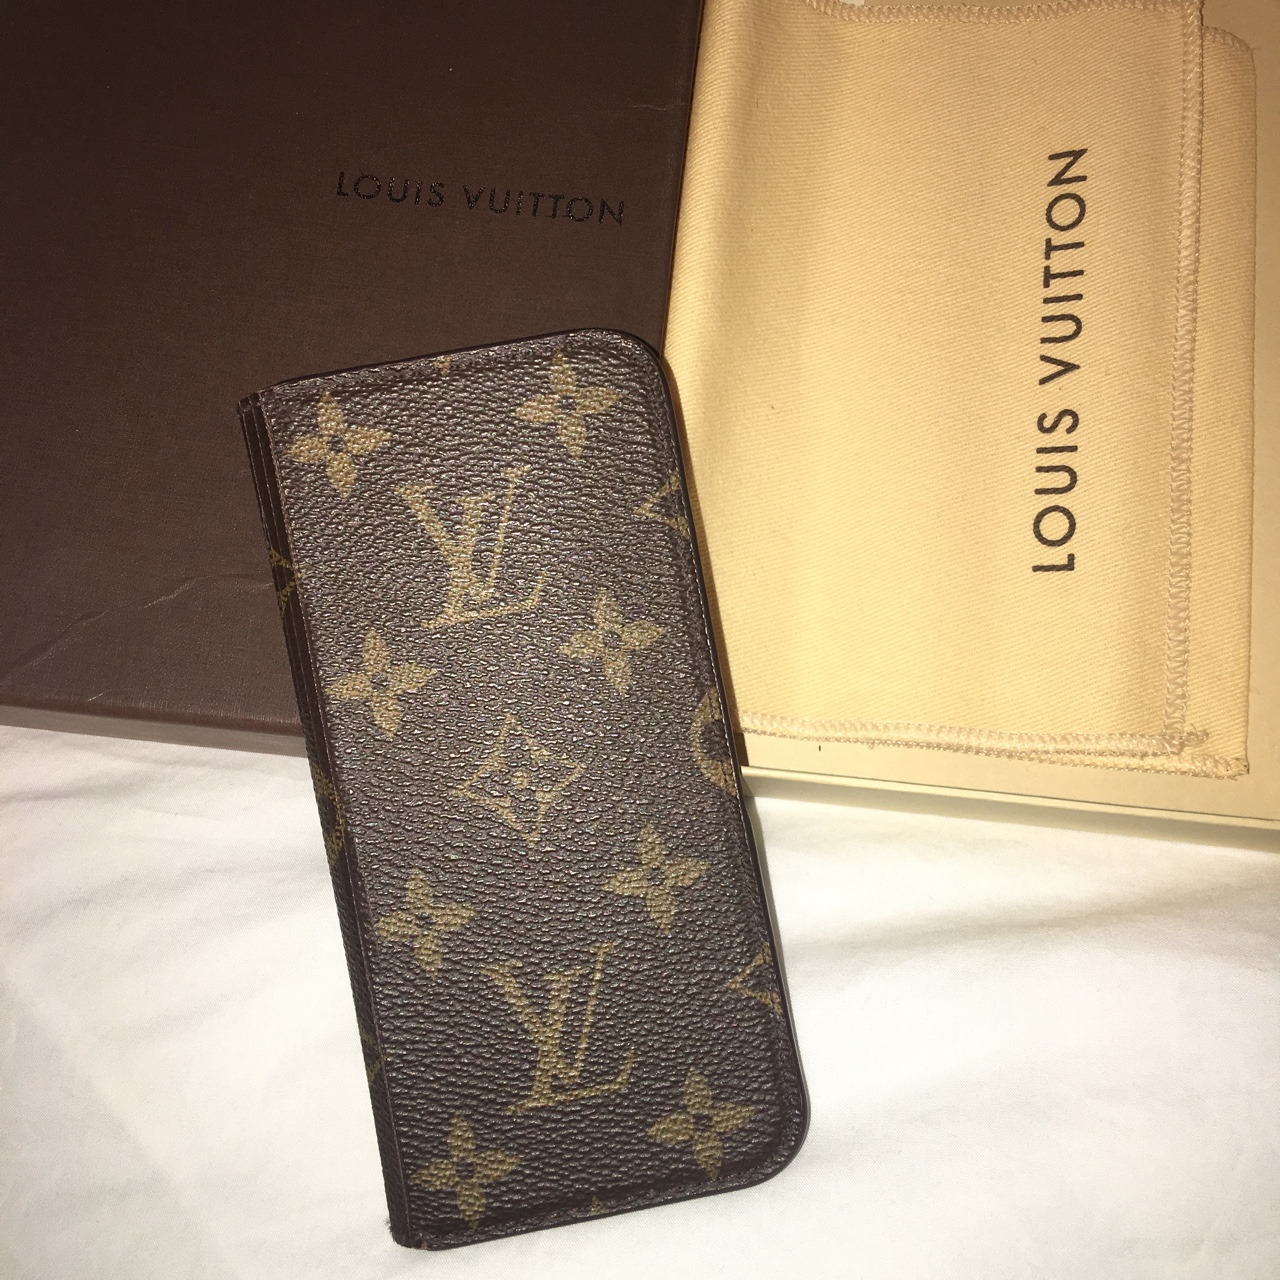 41266b4e8ea Louis Vuitton iPhone 6 Cover. Like new bought from... - Depop